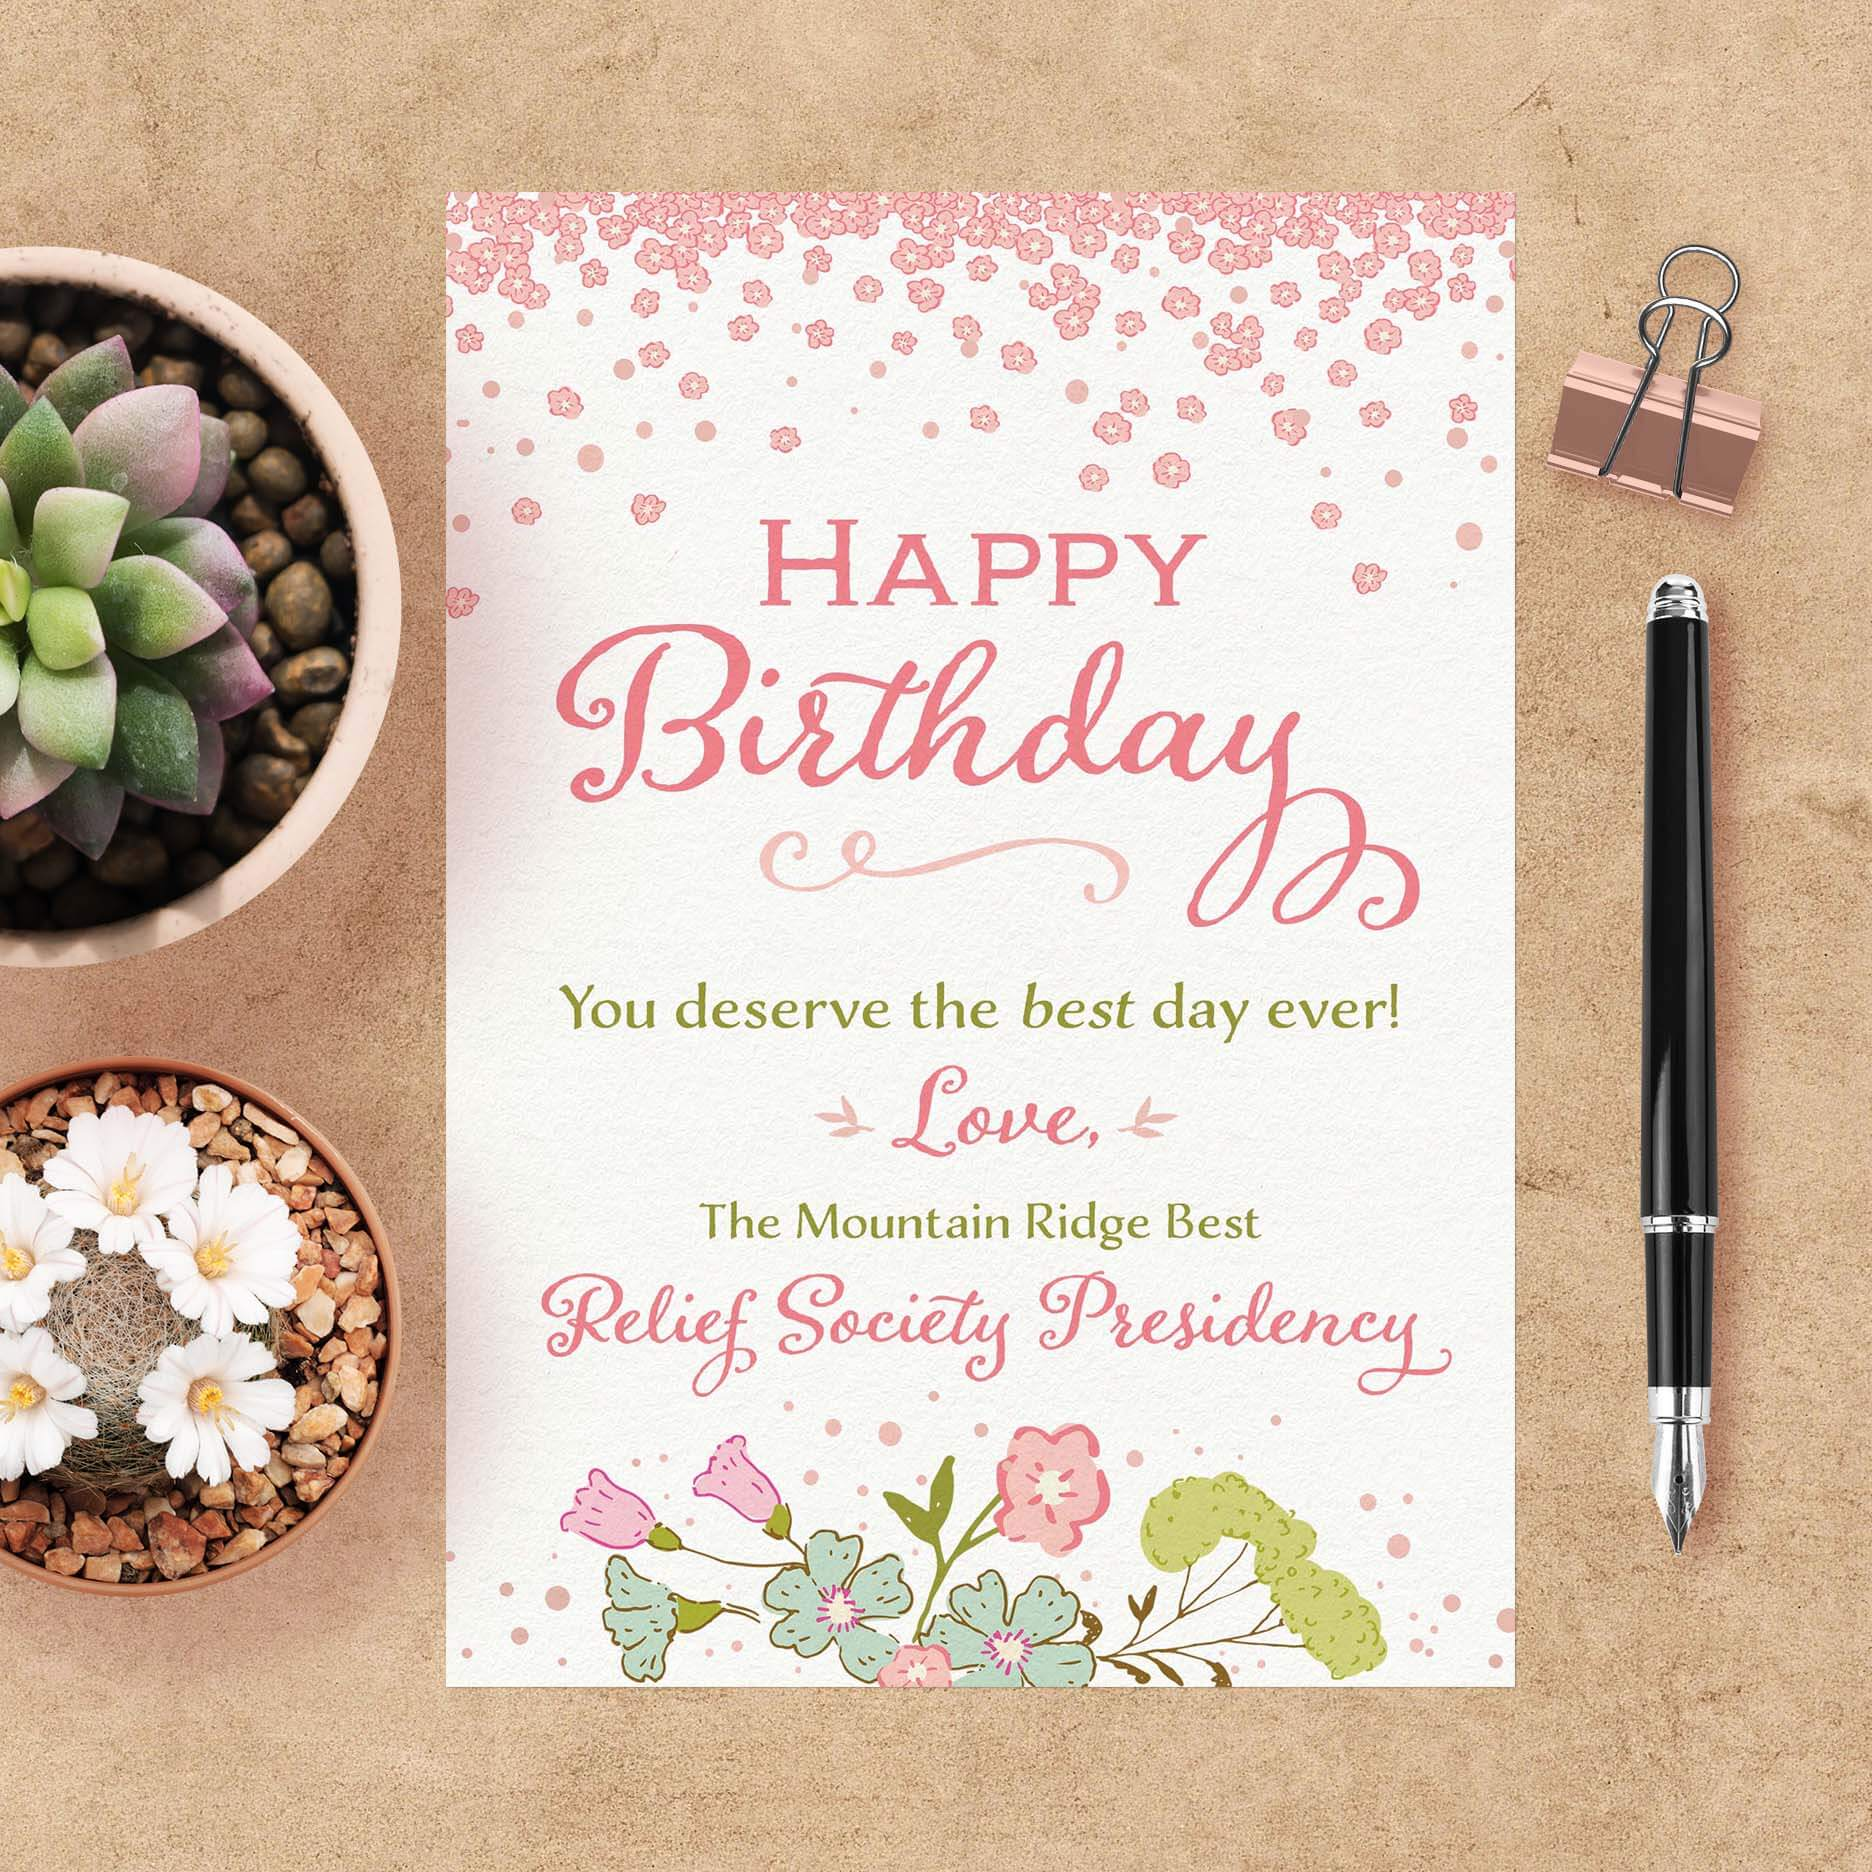 Custom Birthday Card For LDS Relief Society